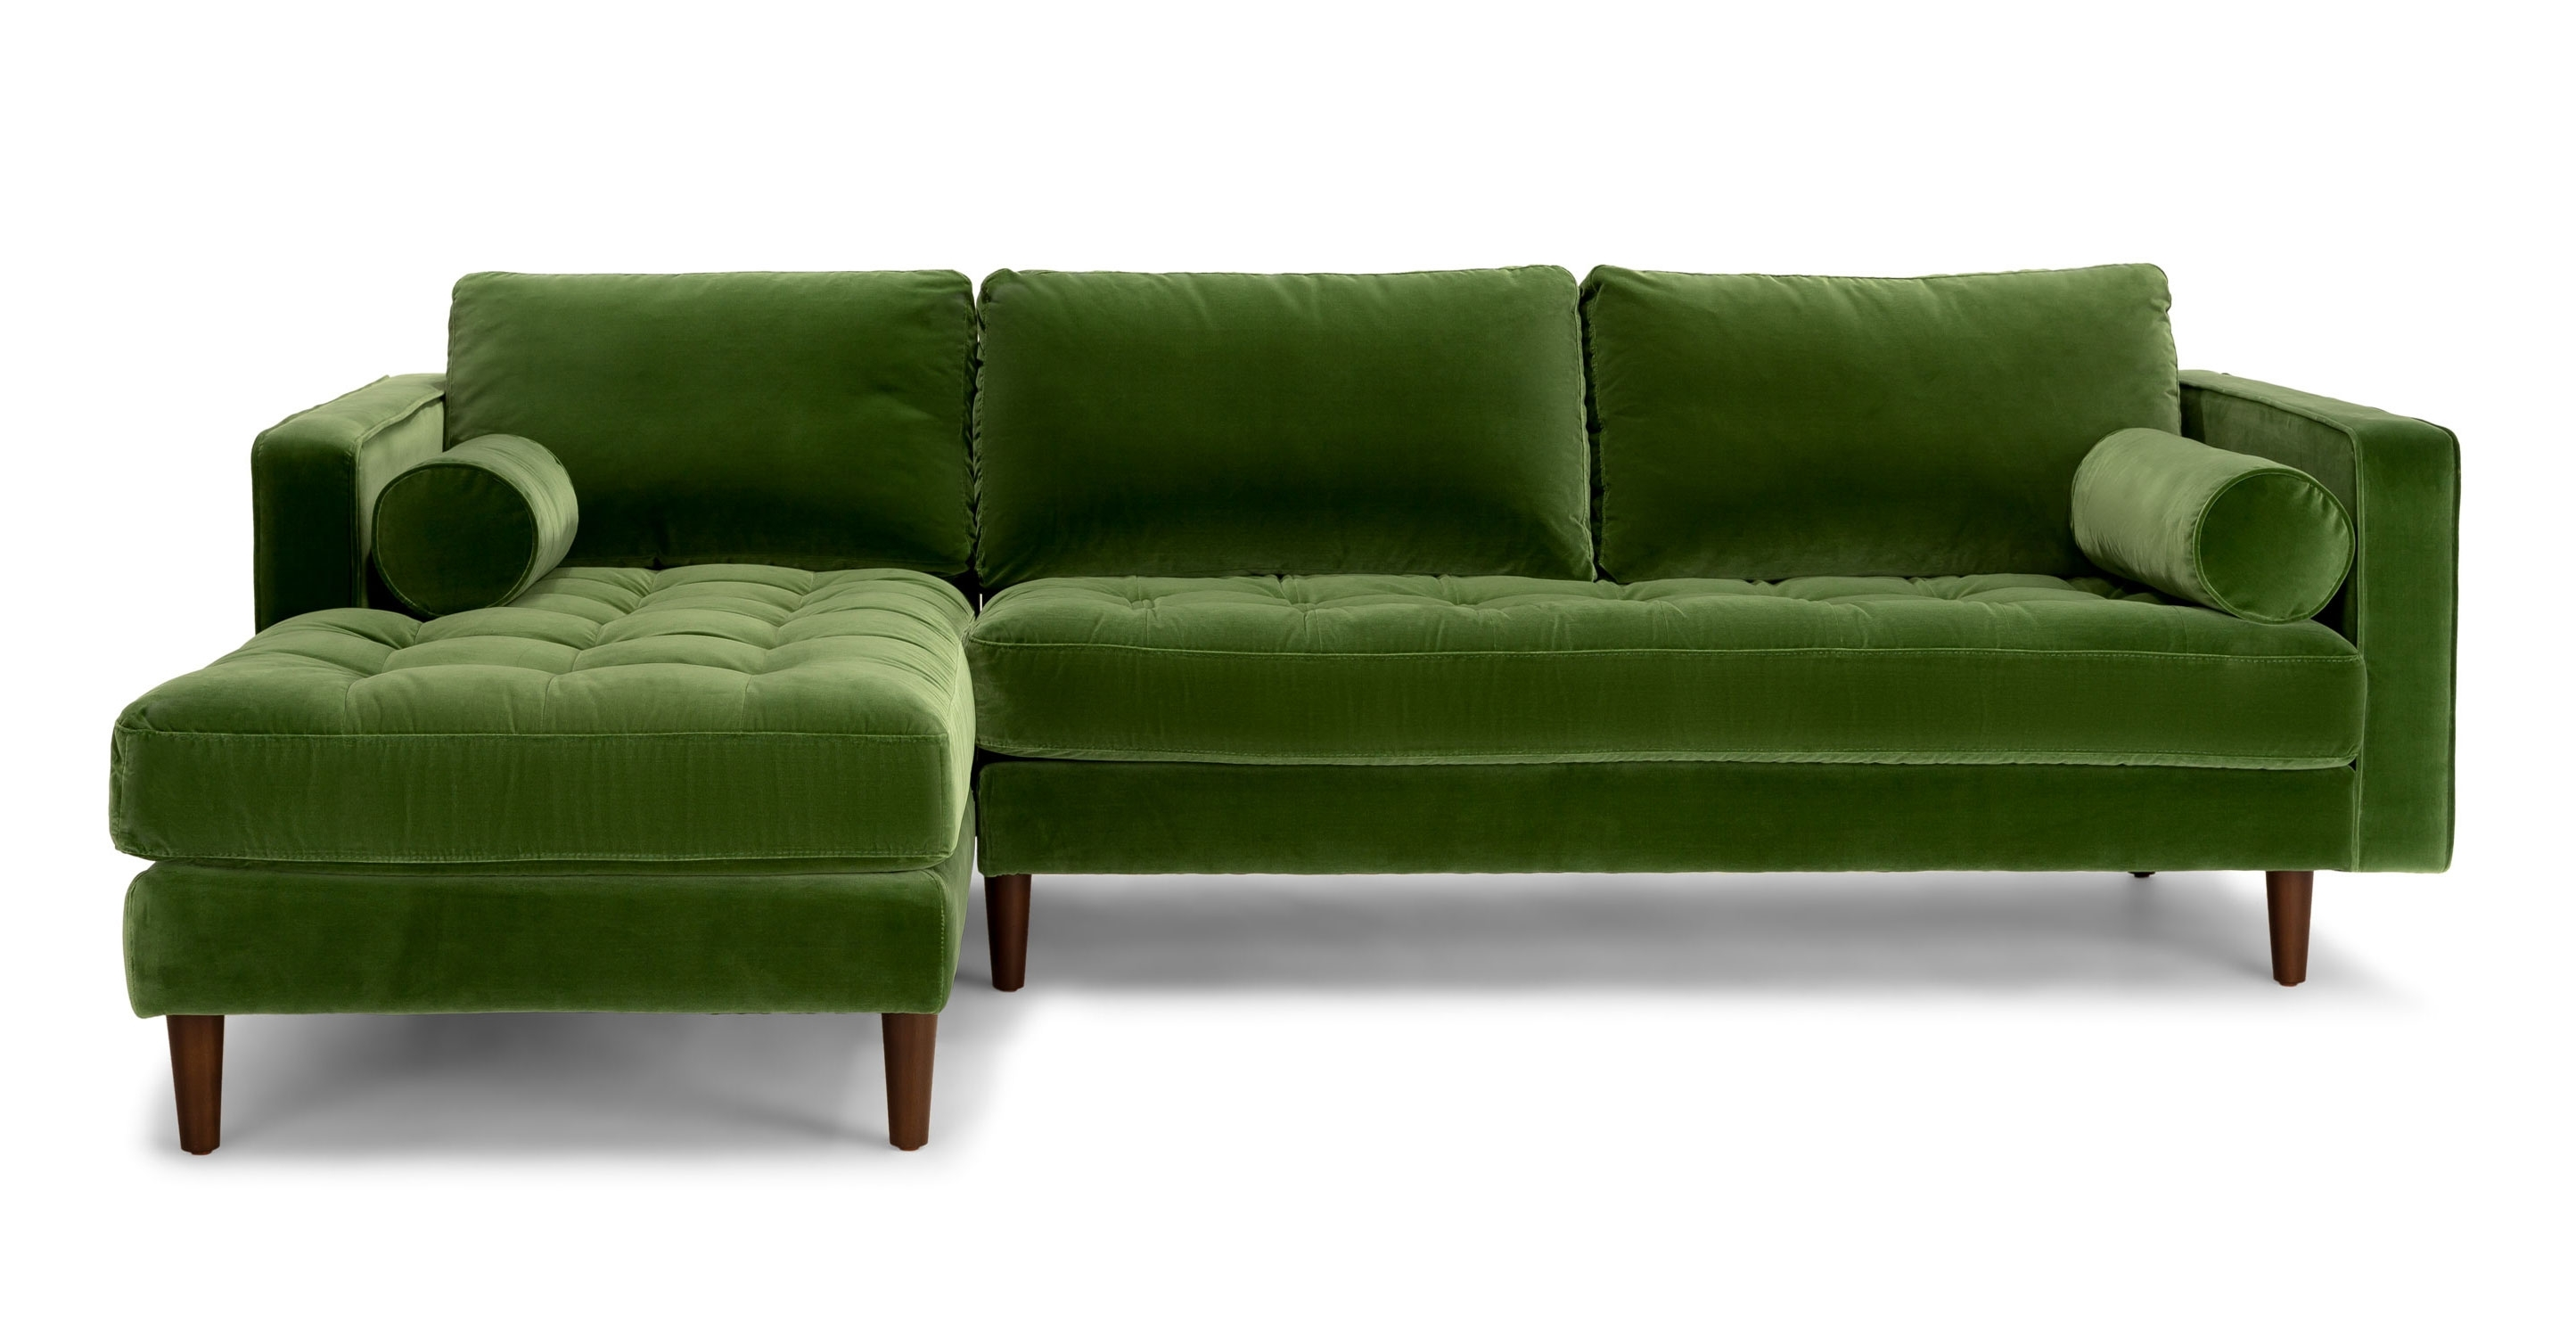 emerald green sofa covers mart furniture quality reviews 10 collection of sectional sofas ideas